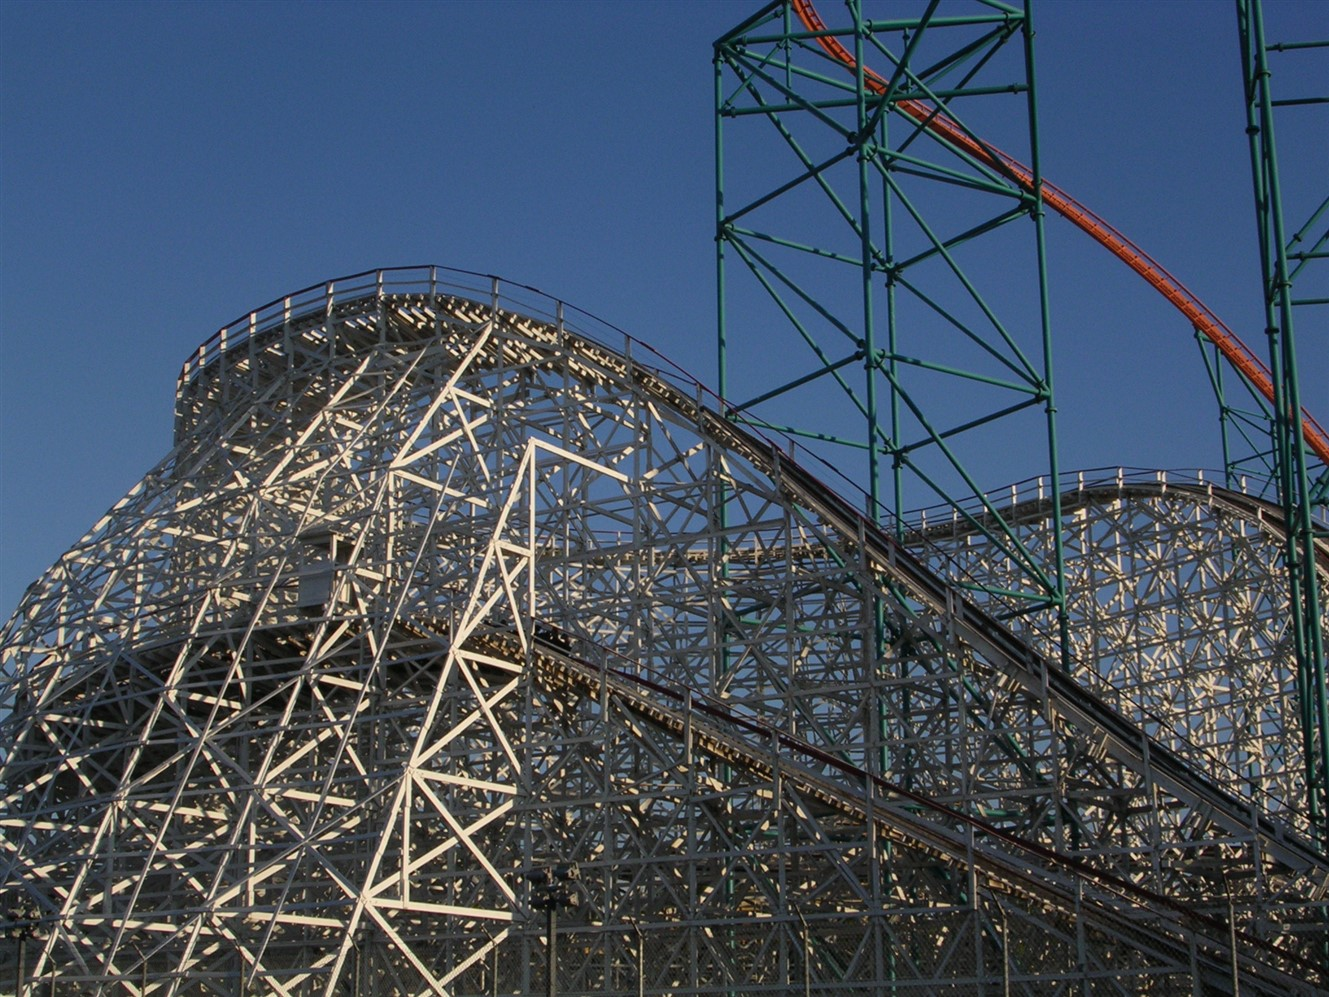 2005 06 30 Magic Mountain California 38.jpg